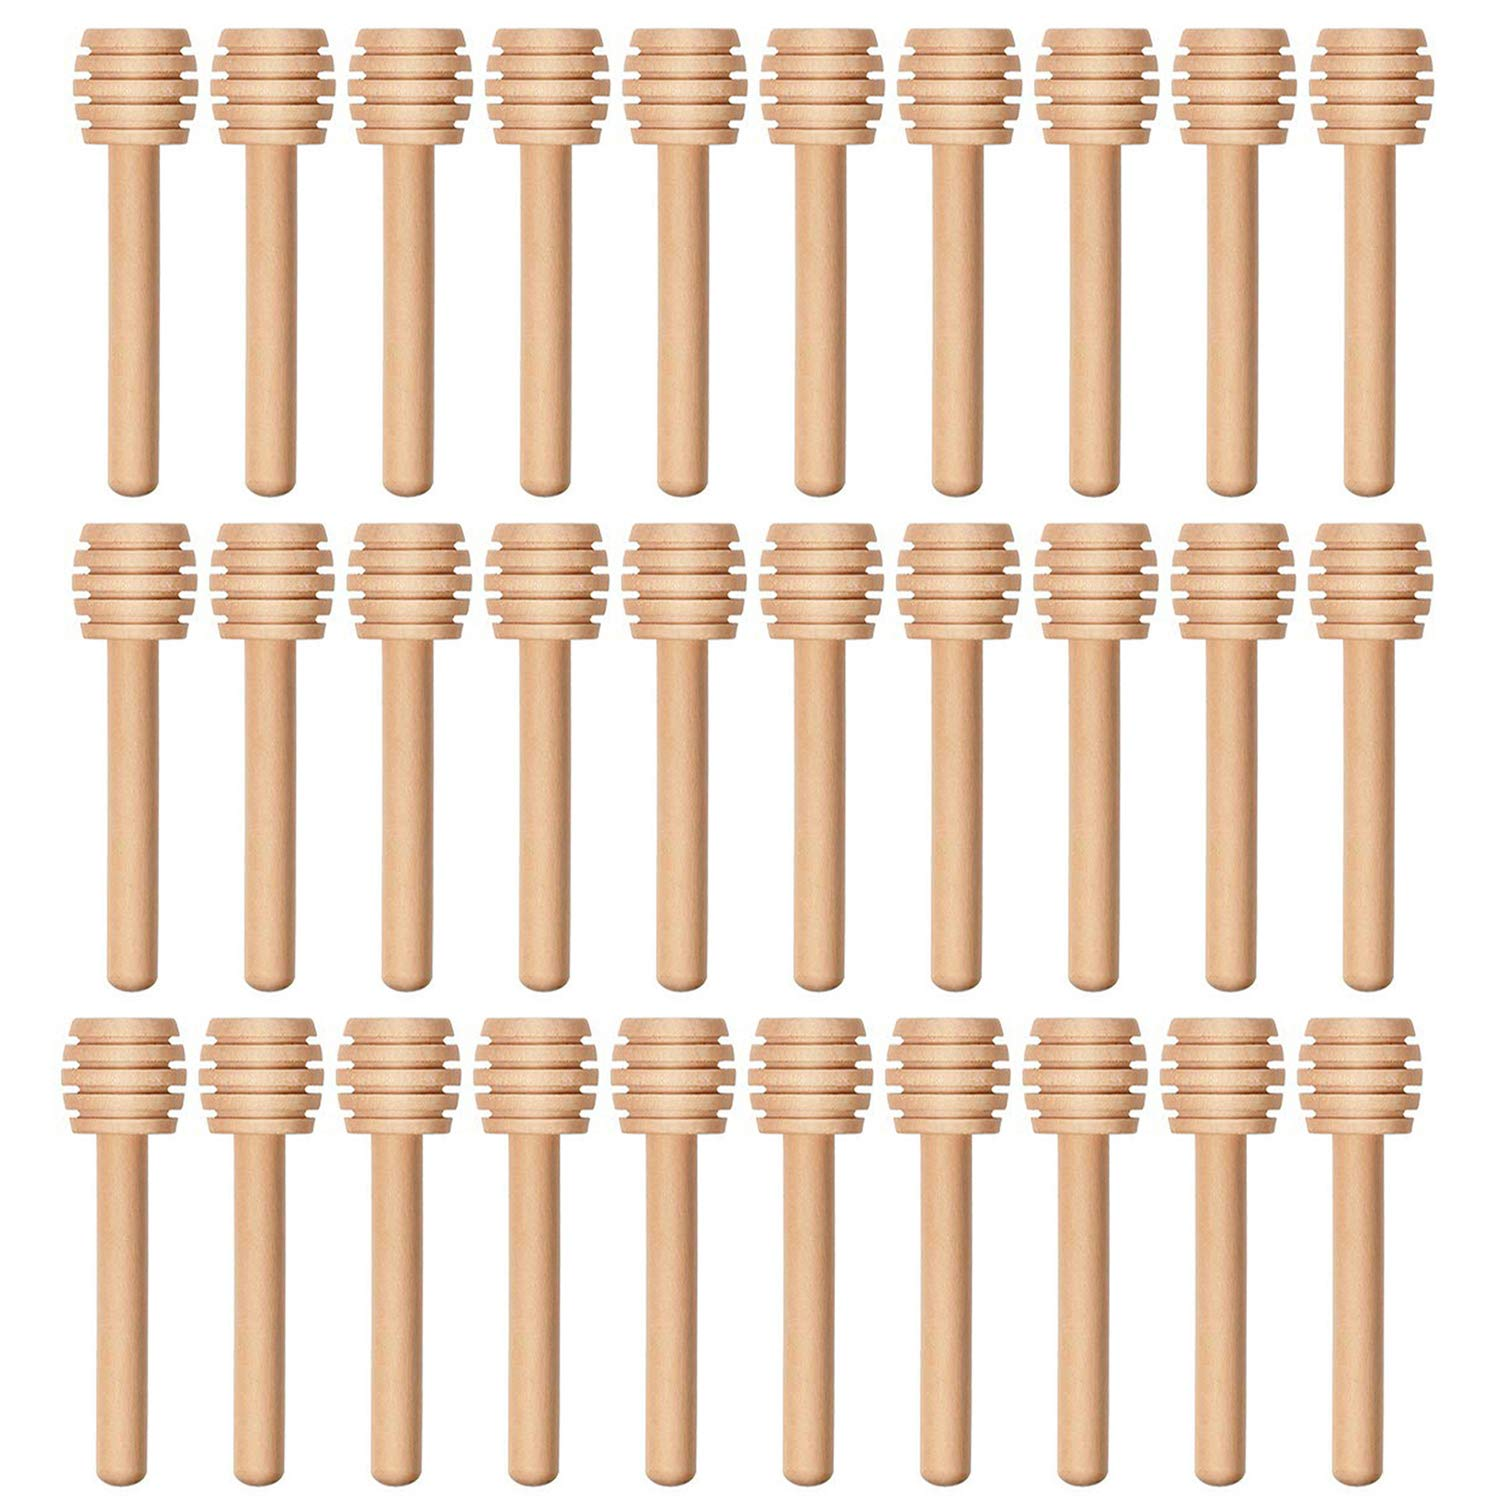 AxeSickle 50 pcs Wooden Honey Dipper Sticks 3 inch Mini Honey Dippers for Honey Jar Dispense Drizzle Honey. by Axe Sickle